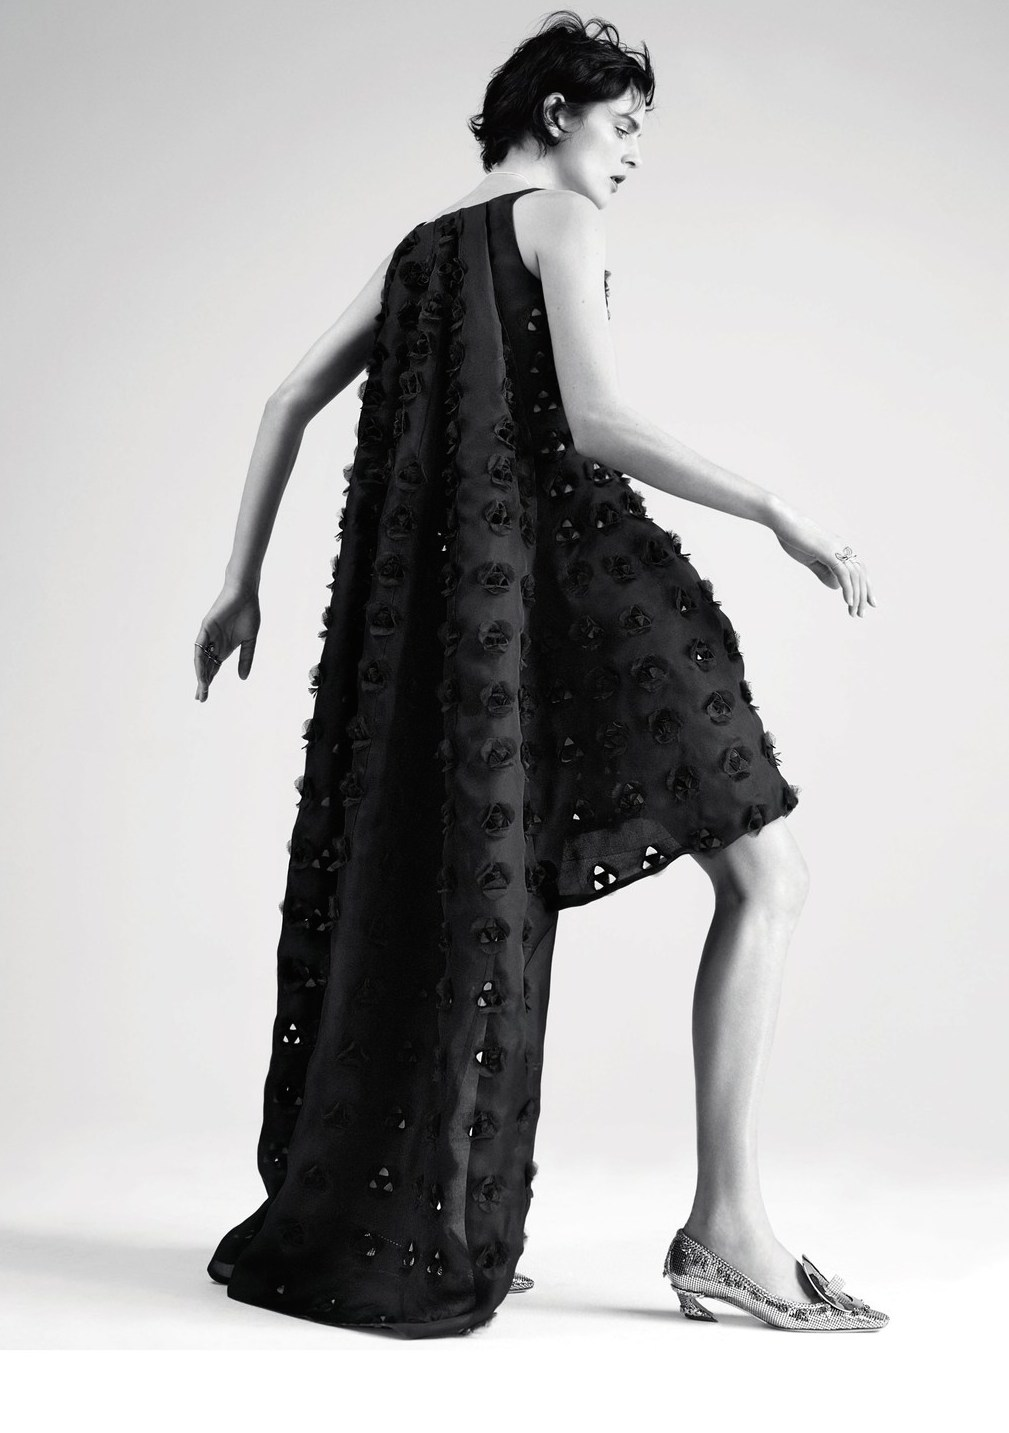 stella-tennant-by-willy-vanderperre-for-dior-magazine-6